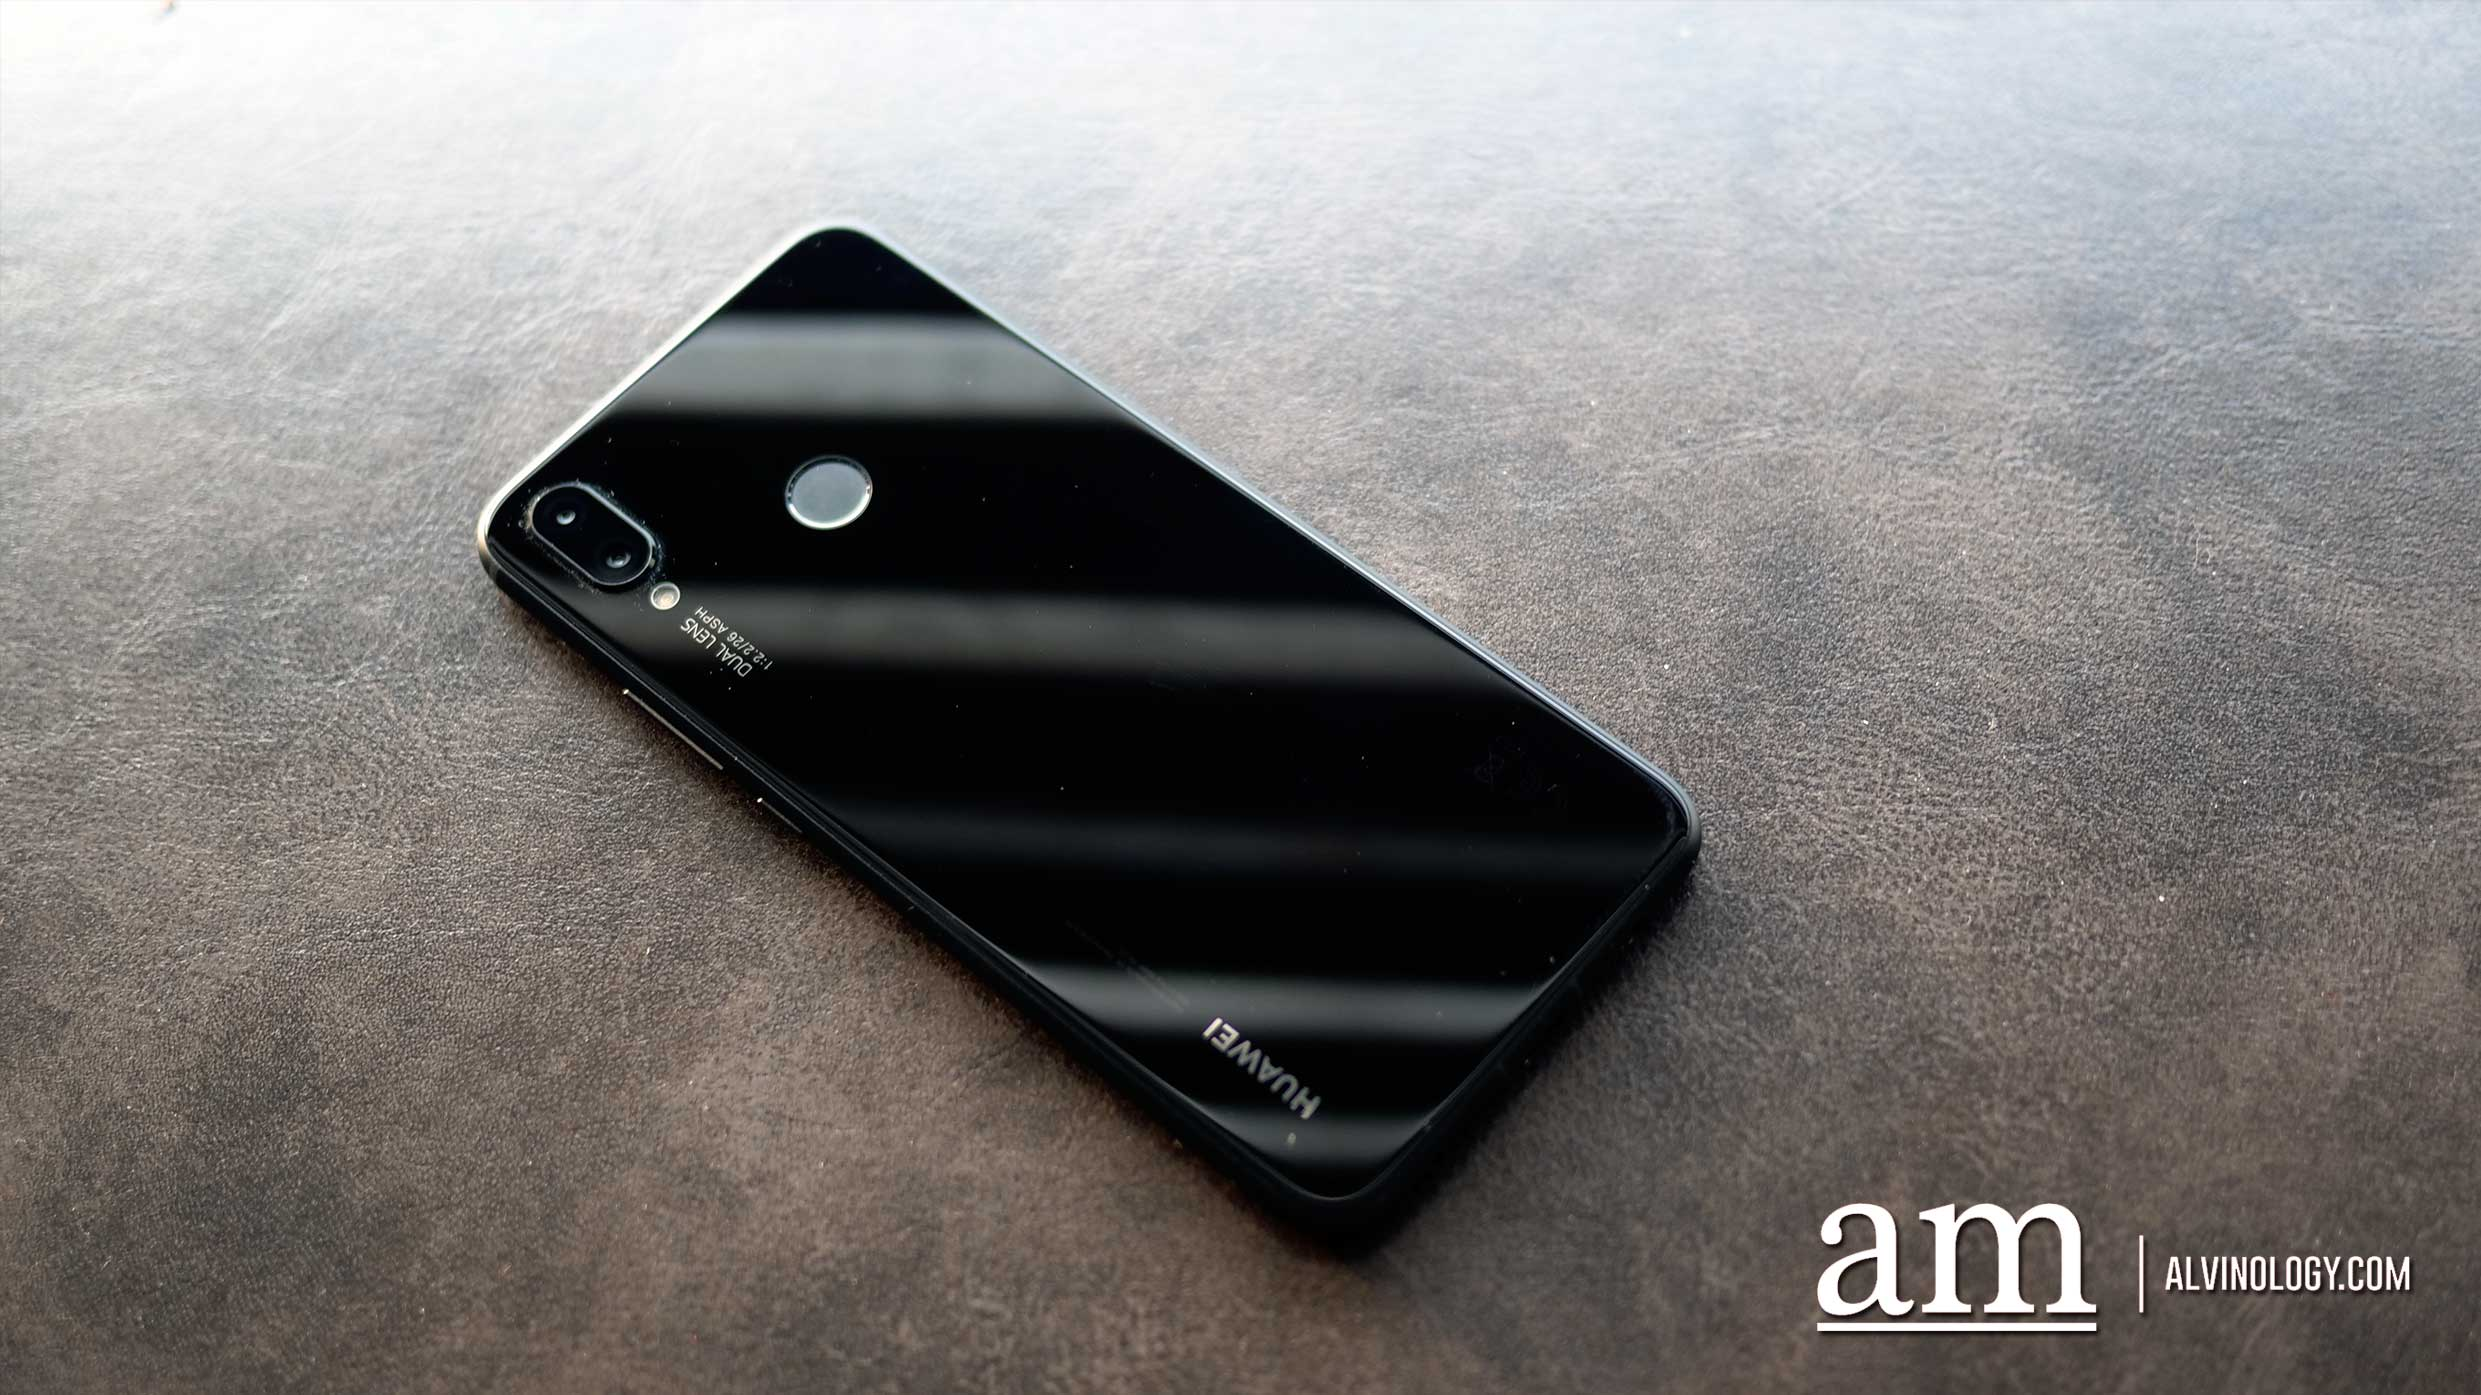 New HUAWEI nova 3i - a mid-range smartphone for the selfie generation - Alvinology